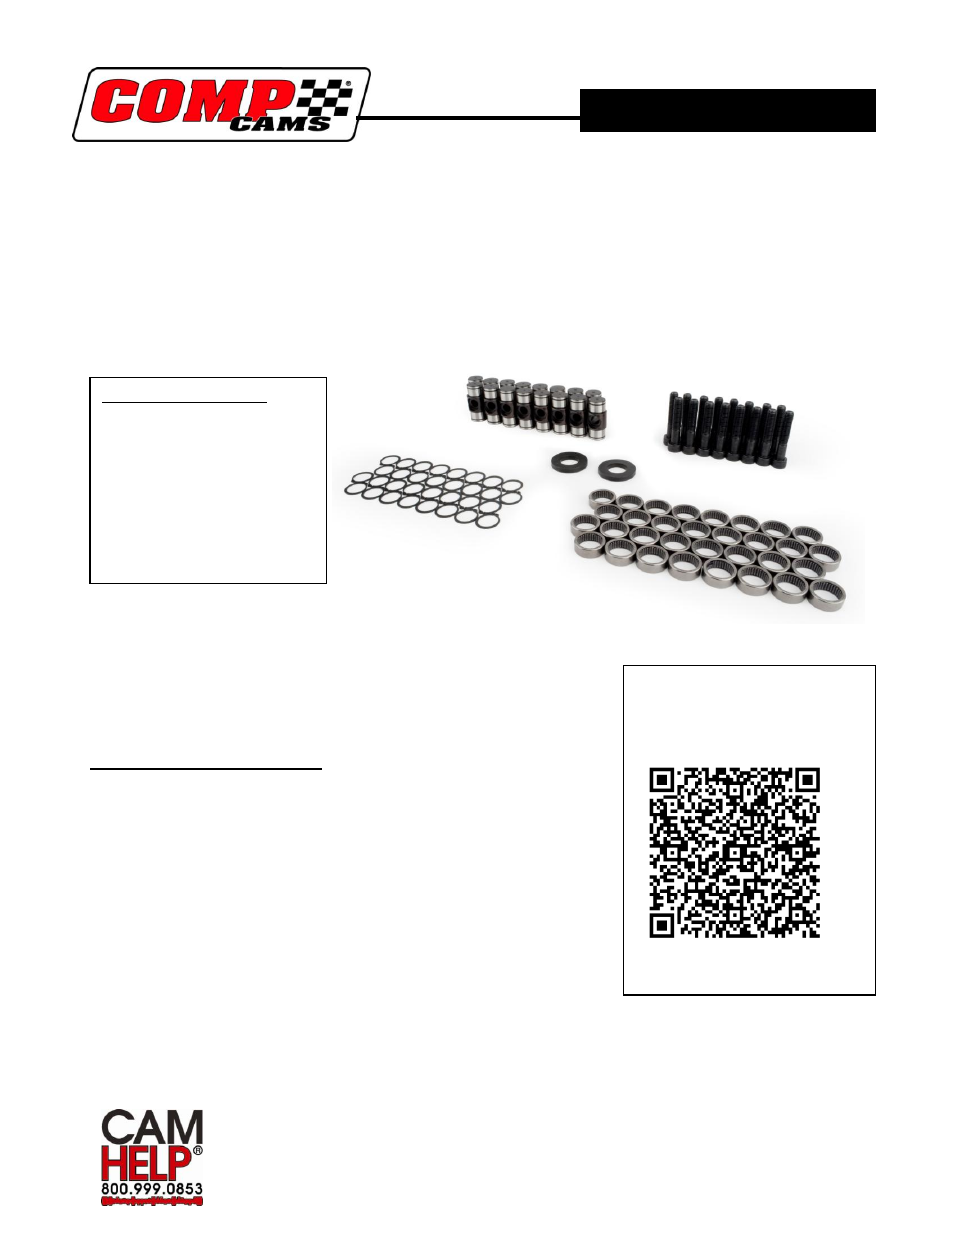 COMP Cams 13702-KIT Rocker Arm Trunion User Manual | 4 pages